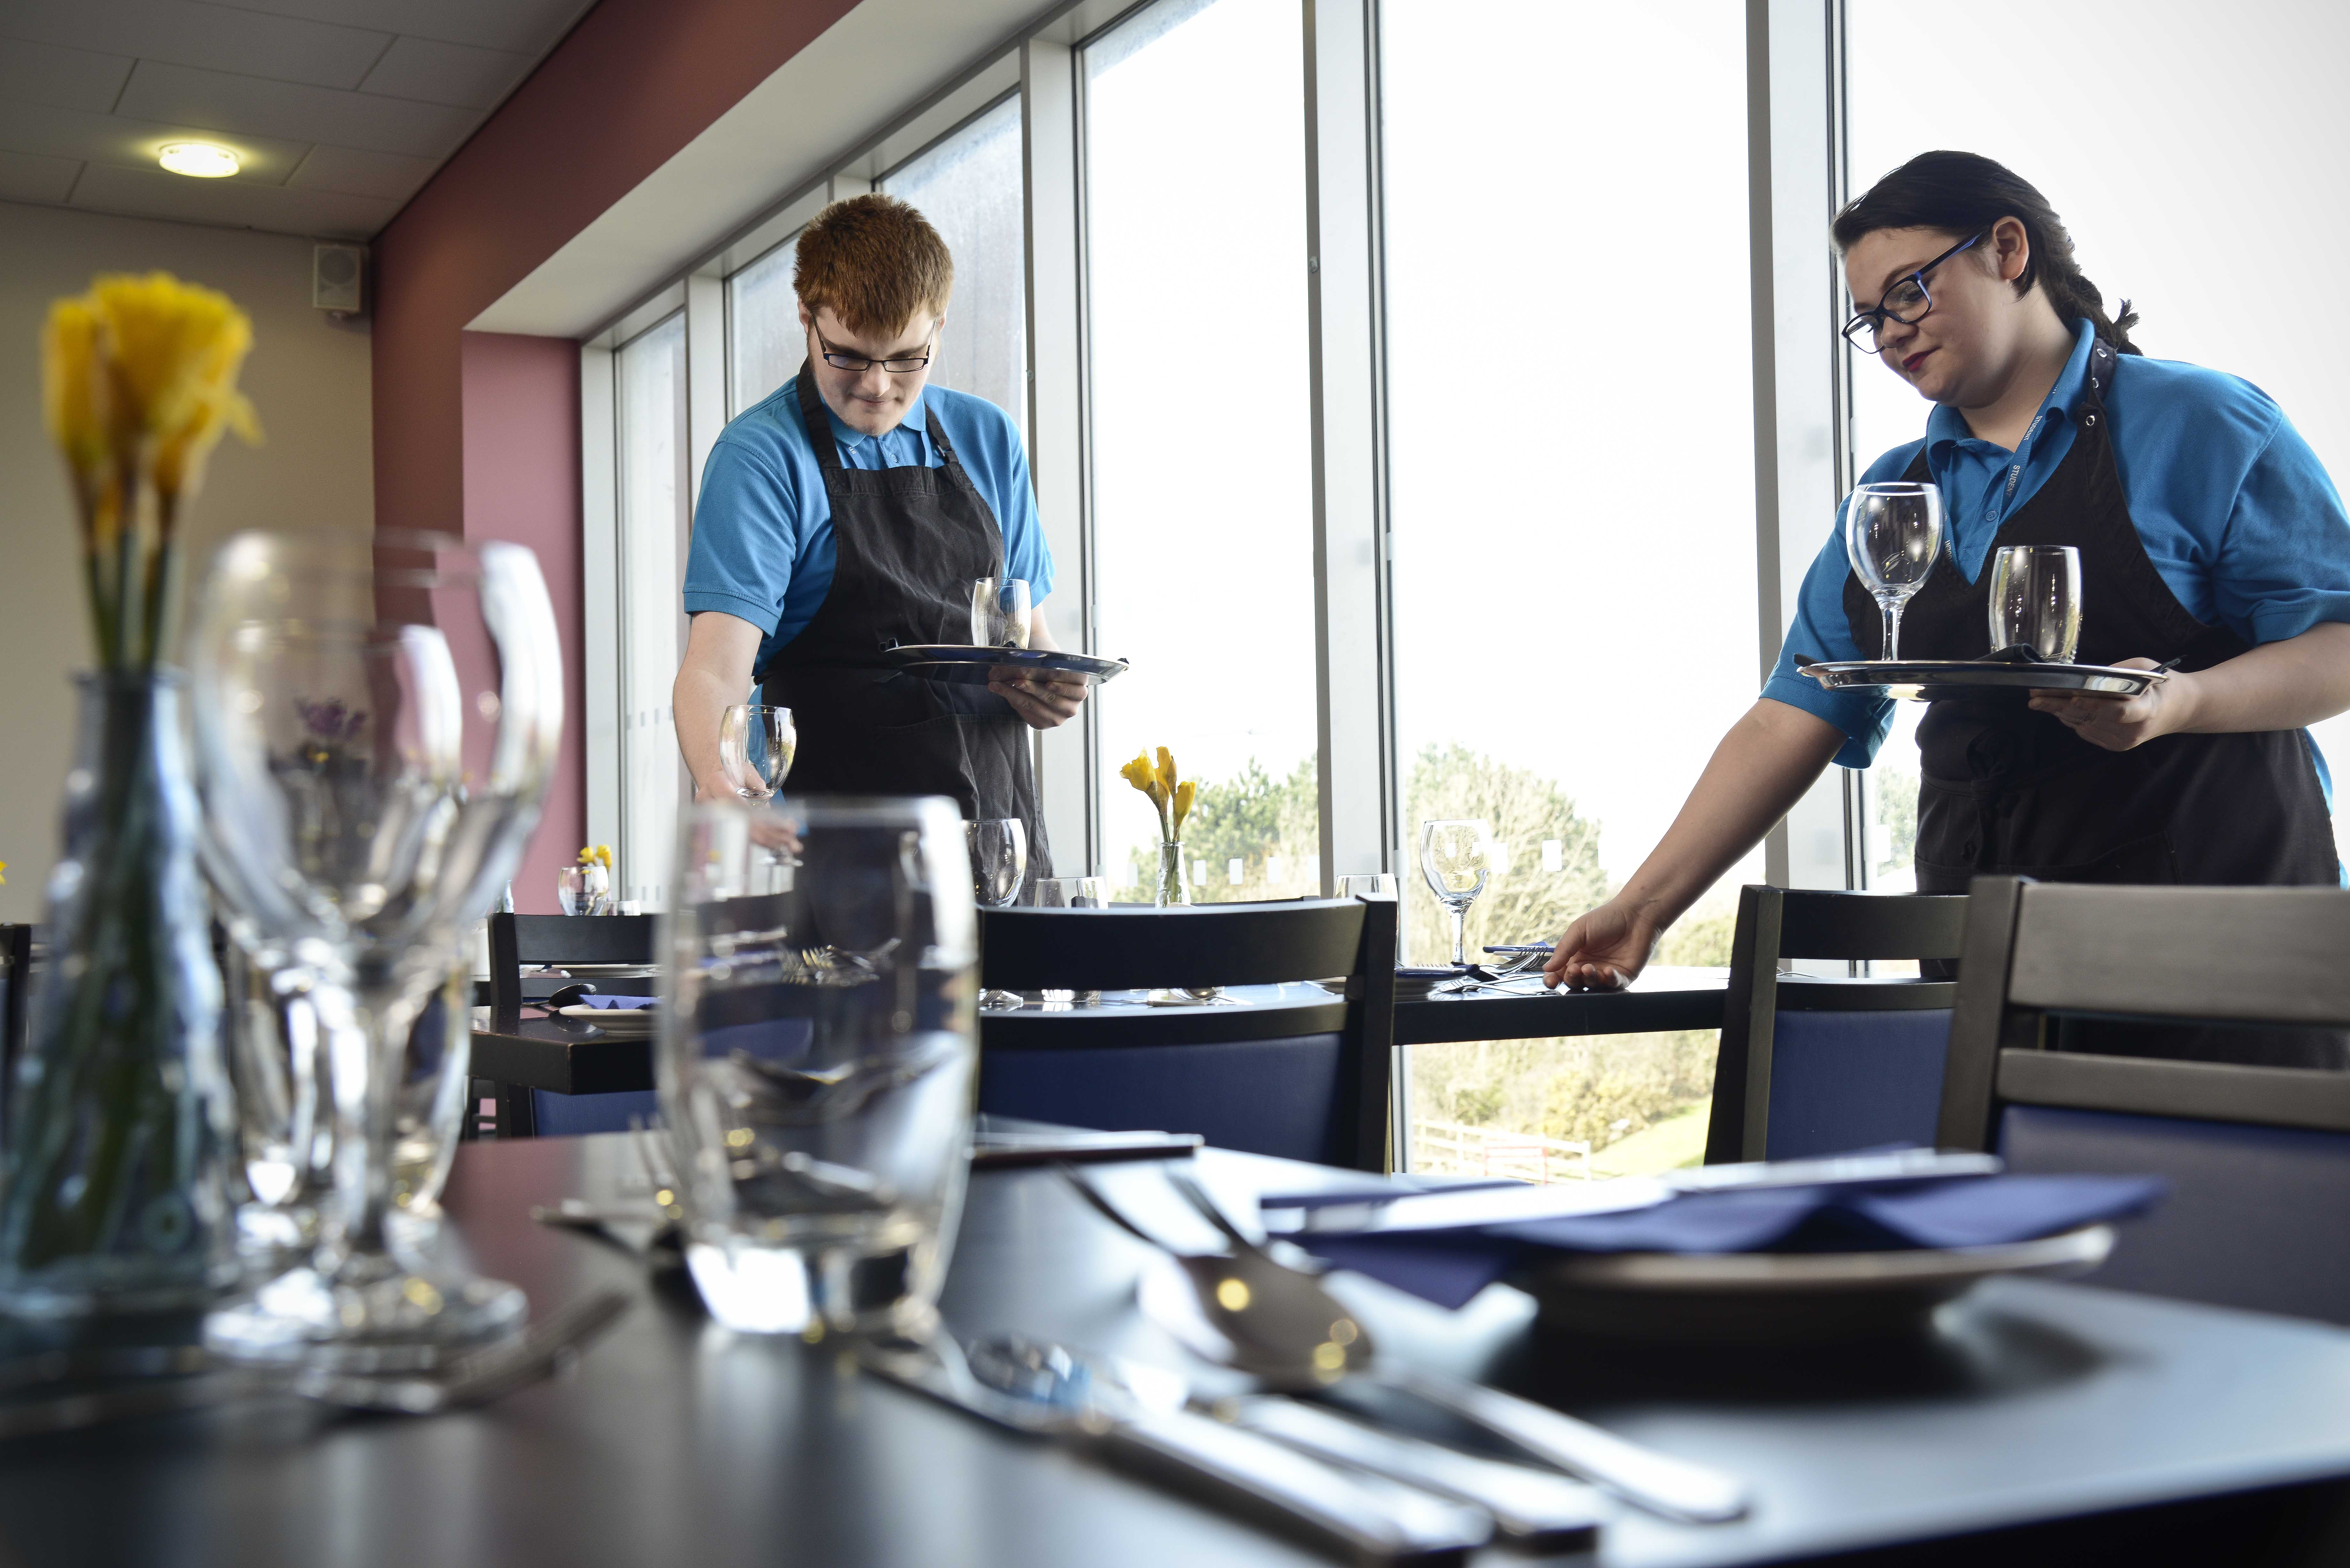 VTCT Level 1 Diploma in Vocational Studies - Hospitality and Catering (QCF)